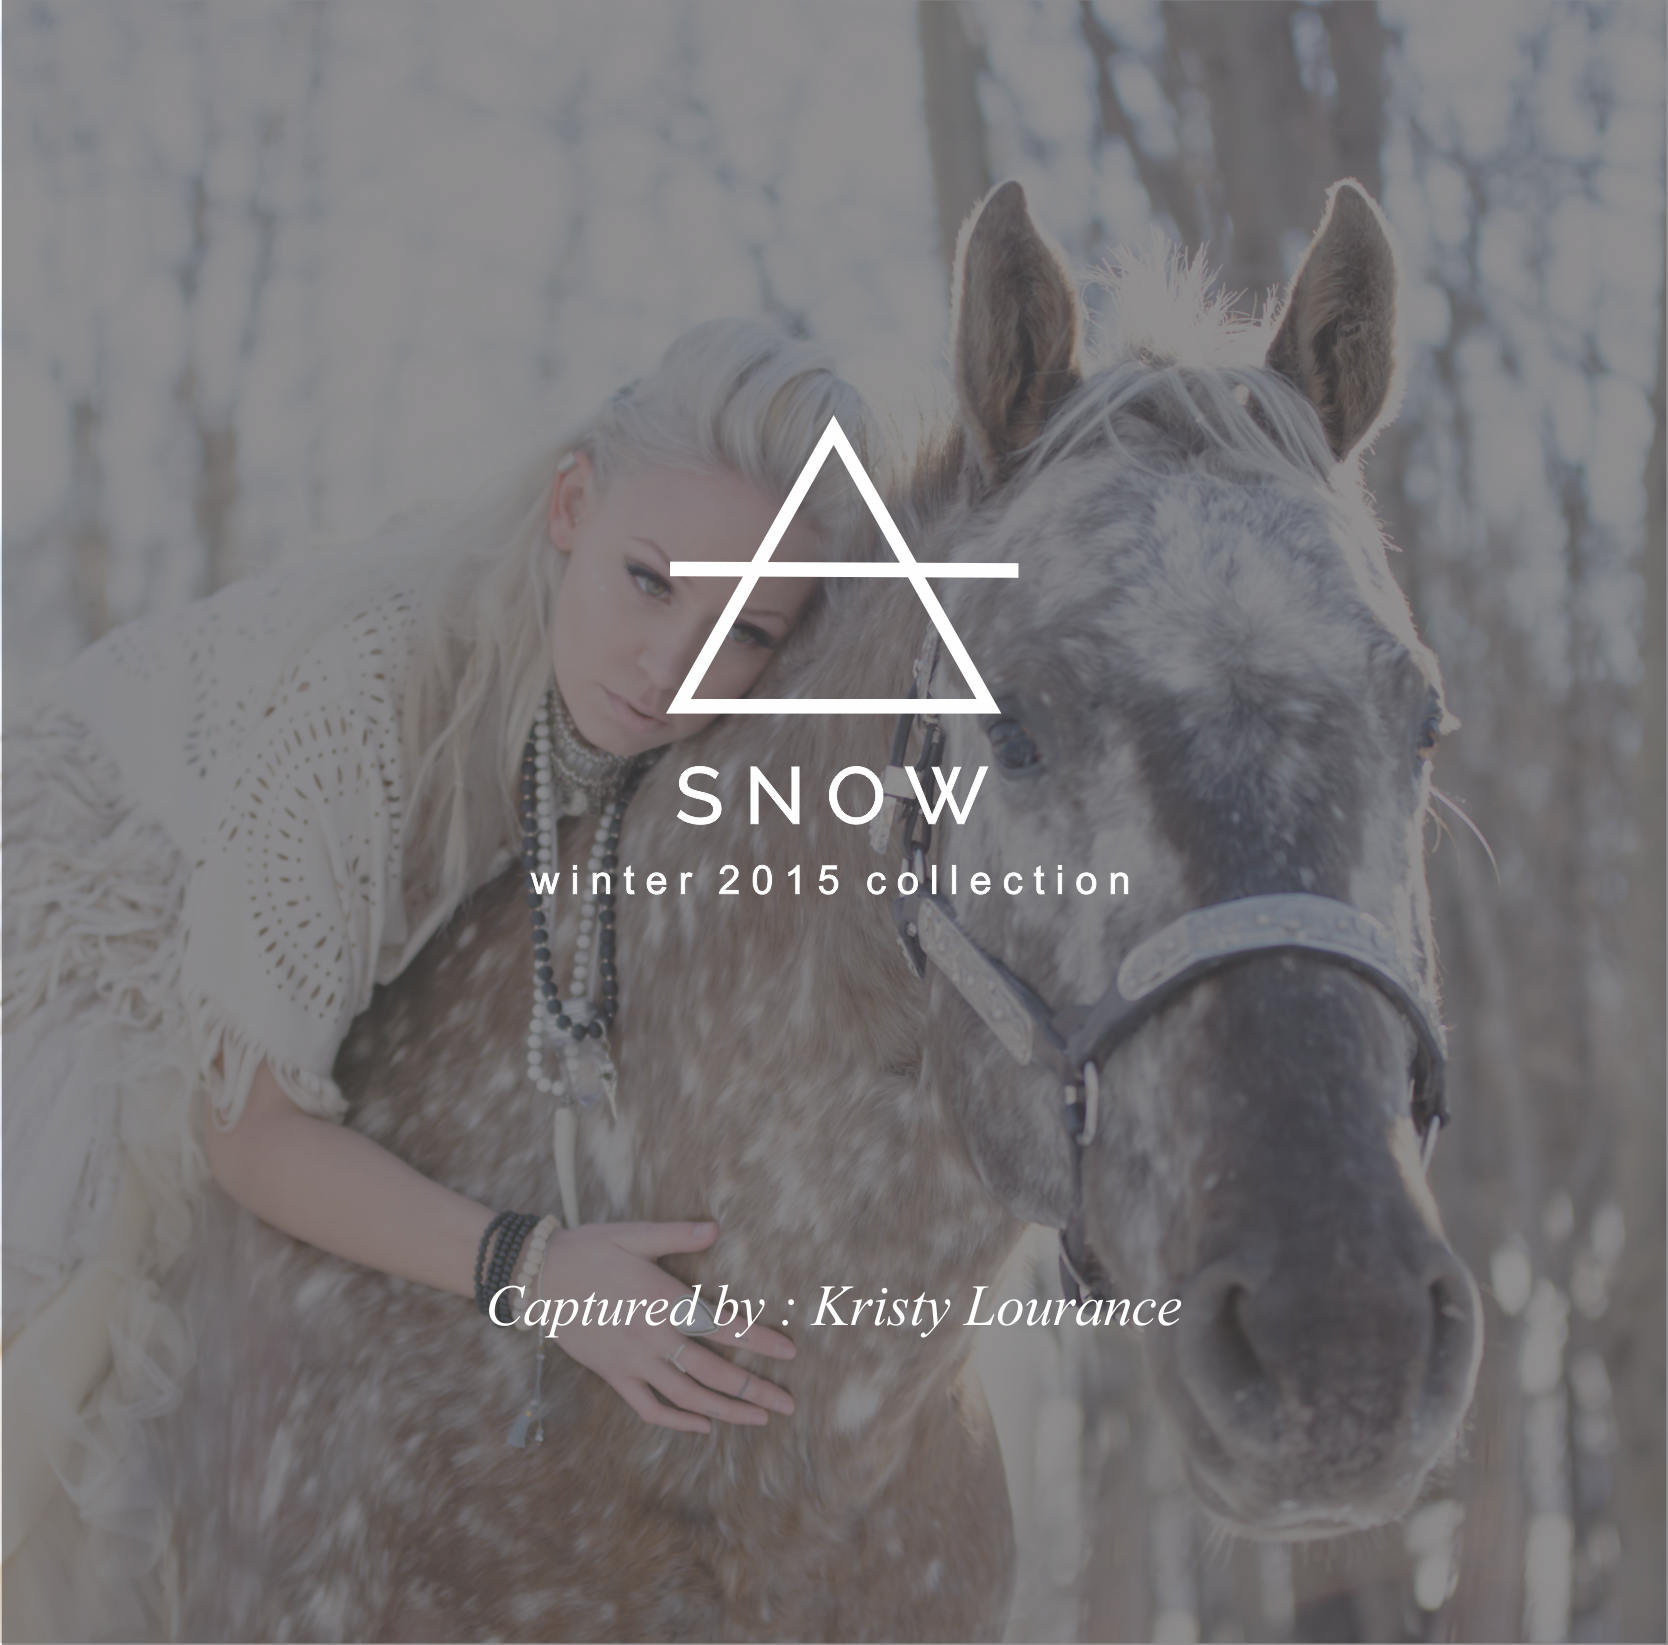 Fantasy Inspired Winter Collection 2015    Handmade gowns, heavy knits, sparkly crystals and layers of jewelry, inspired by snow and fairy tales, Kristy Lourance photographs the winter collection perfectly. Oh, and there's a unicorn.